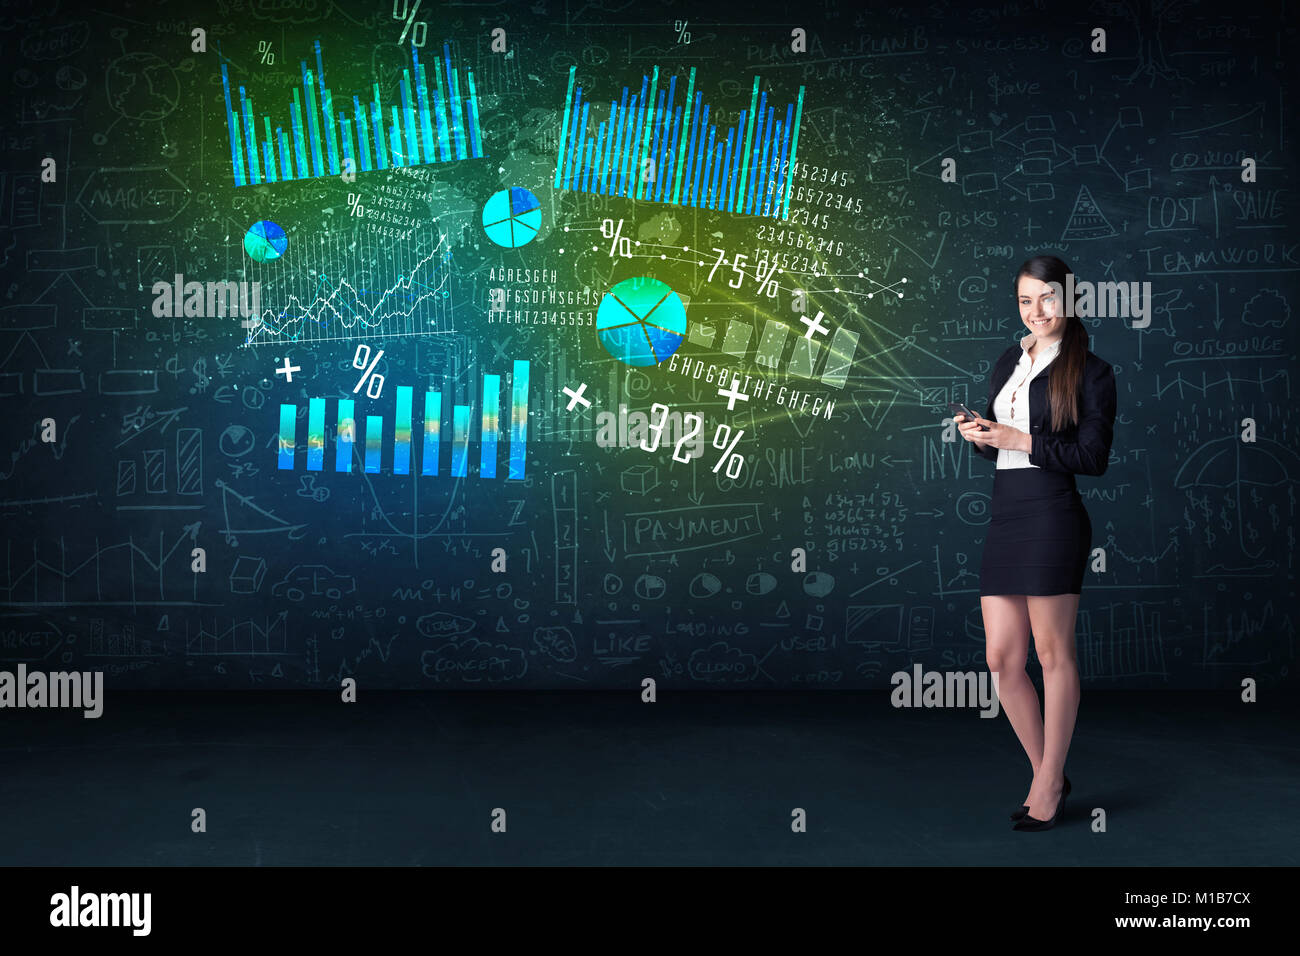 Businesswoman in office with tablet in hand and high tech graph charts concept on background - Stock Image